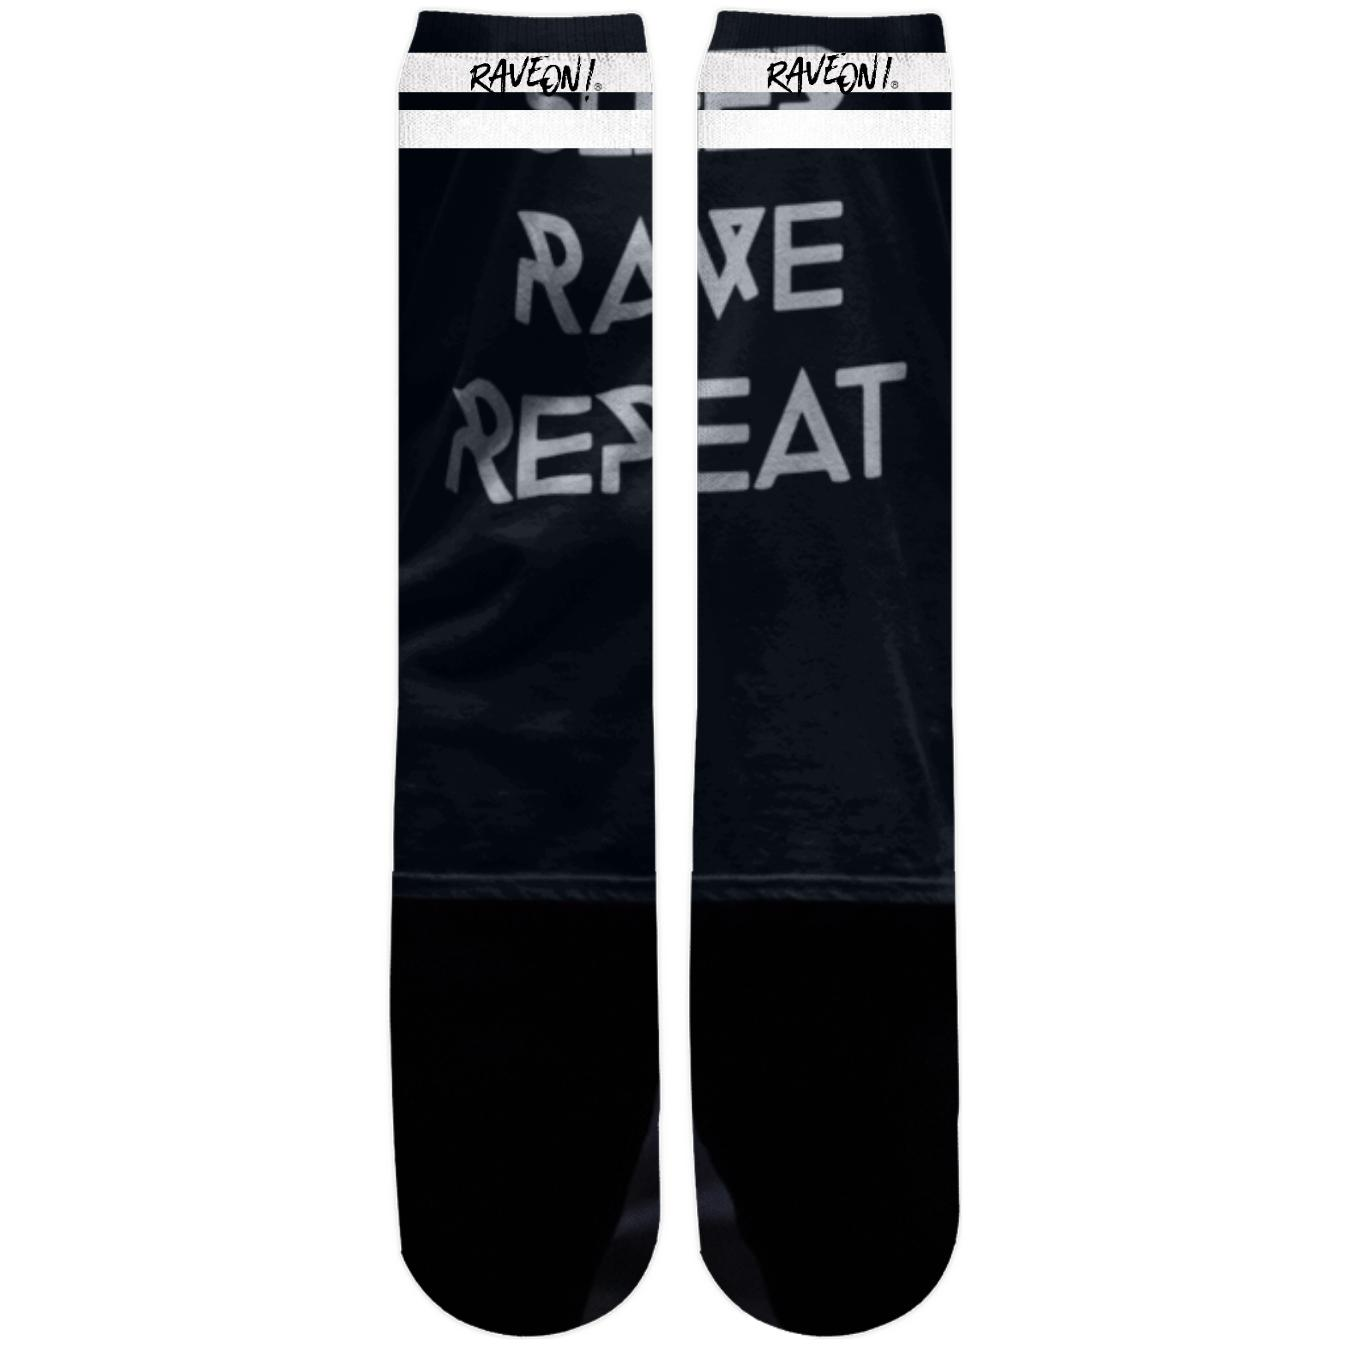 RAVE REPEAT Rave On!® Kniestrümpfe-Knee-High Socks-One Size-Rave-On! I www.rave-on.shop I Deine Rave & Techno Szene Shop I coole socks, hohe socken, rageon, RageOn Connect, rave repeat, rave socken, raver socken, rspid4732118007896, skateboard socken, skater socken, skater socks, socken, socks, two, two stripes, twostripes - Sexy Festival Streetwear , Clubwear & Raver Style